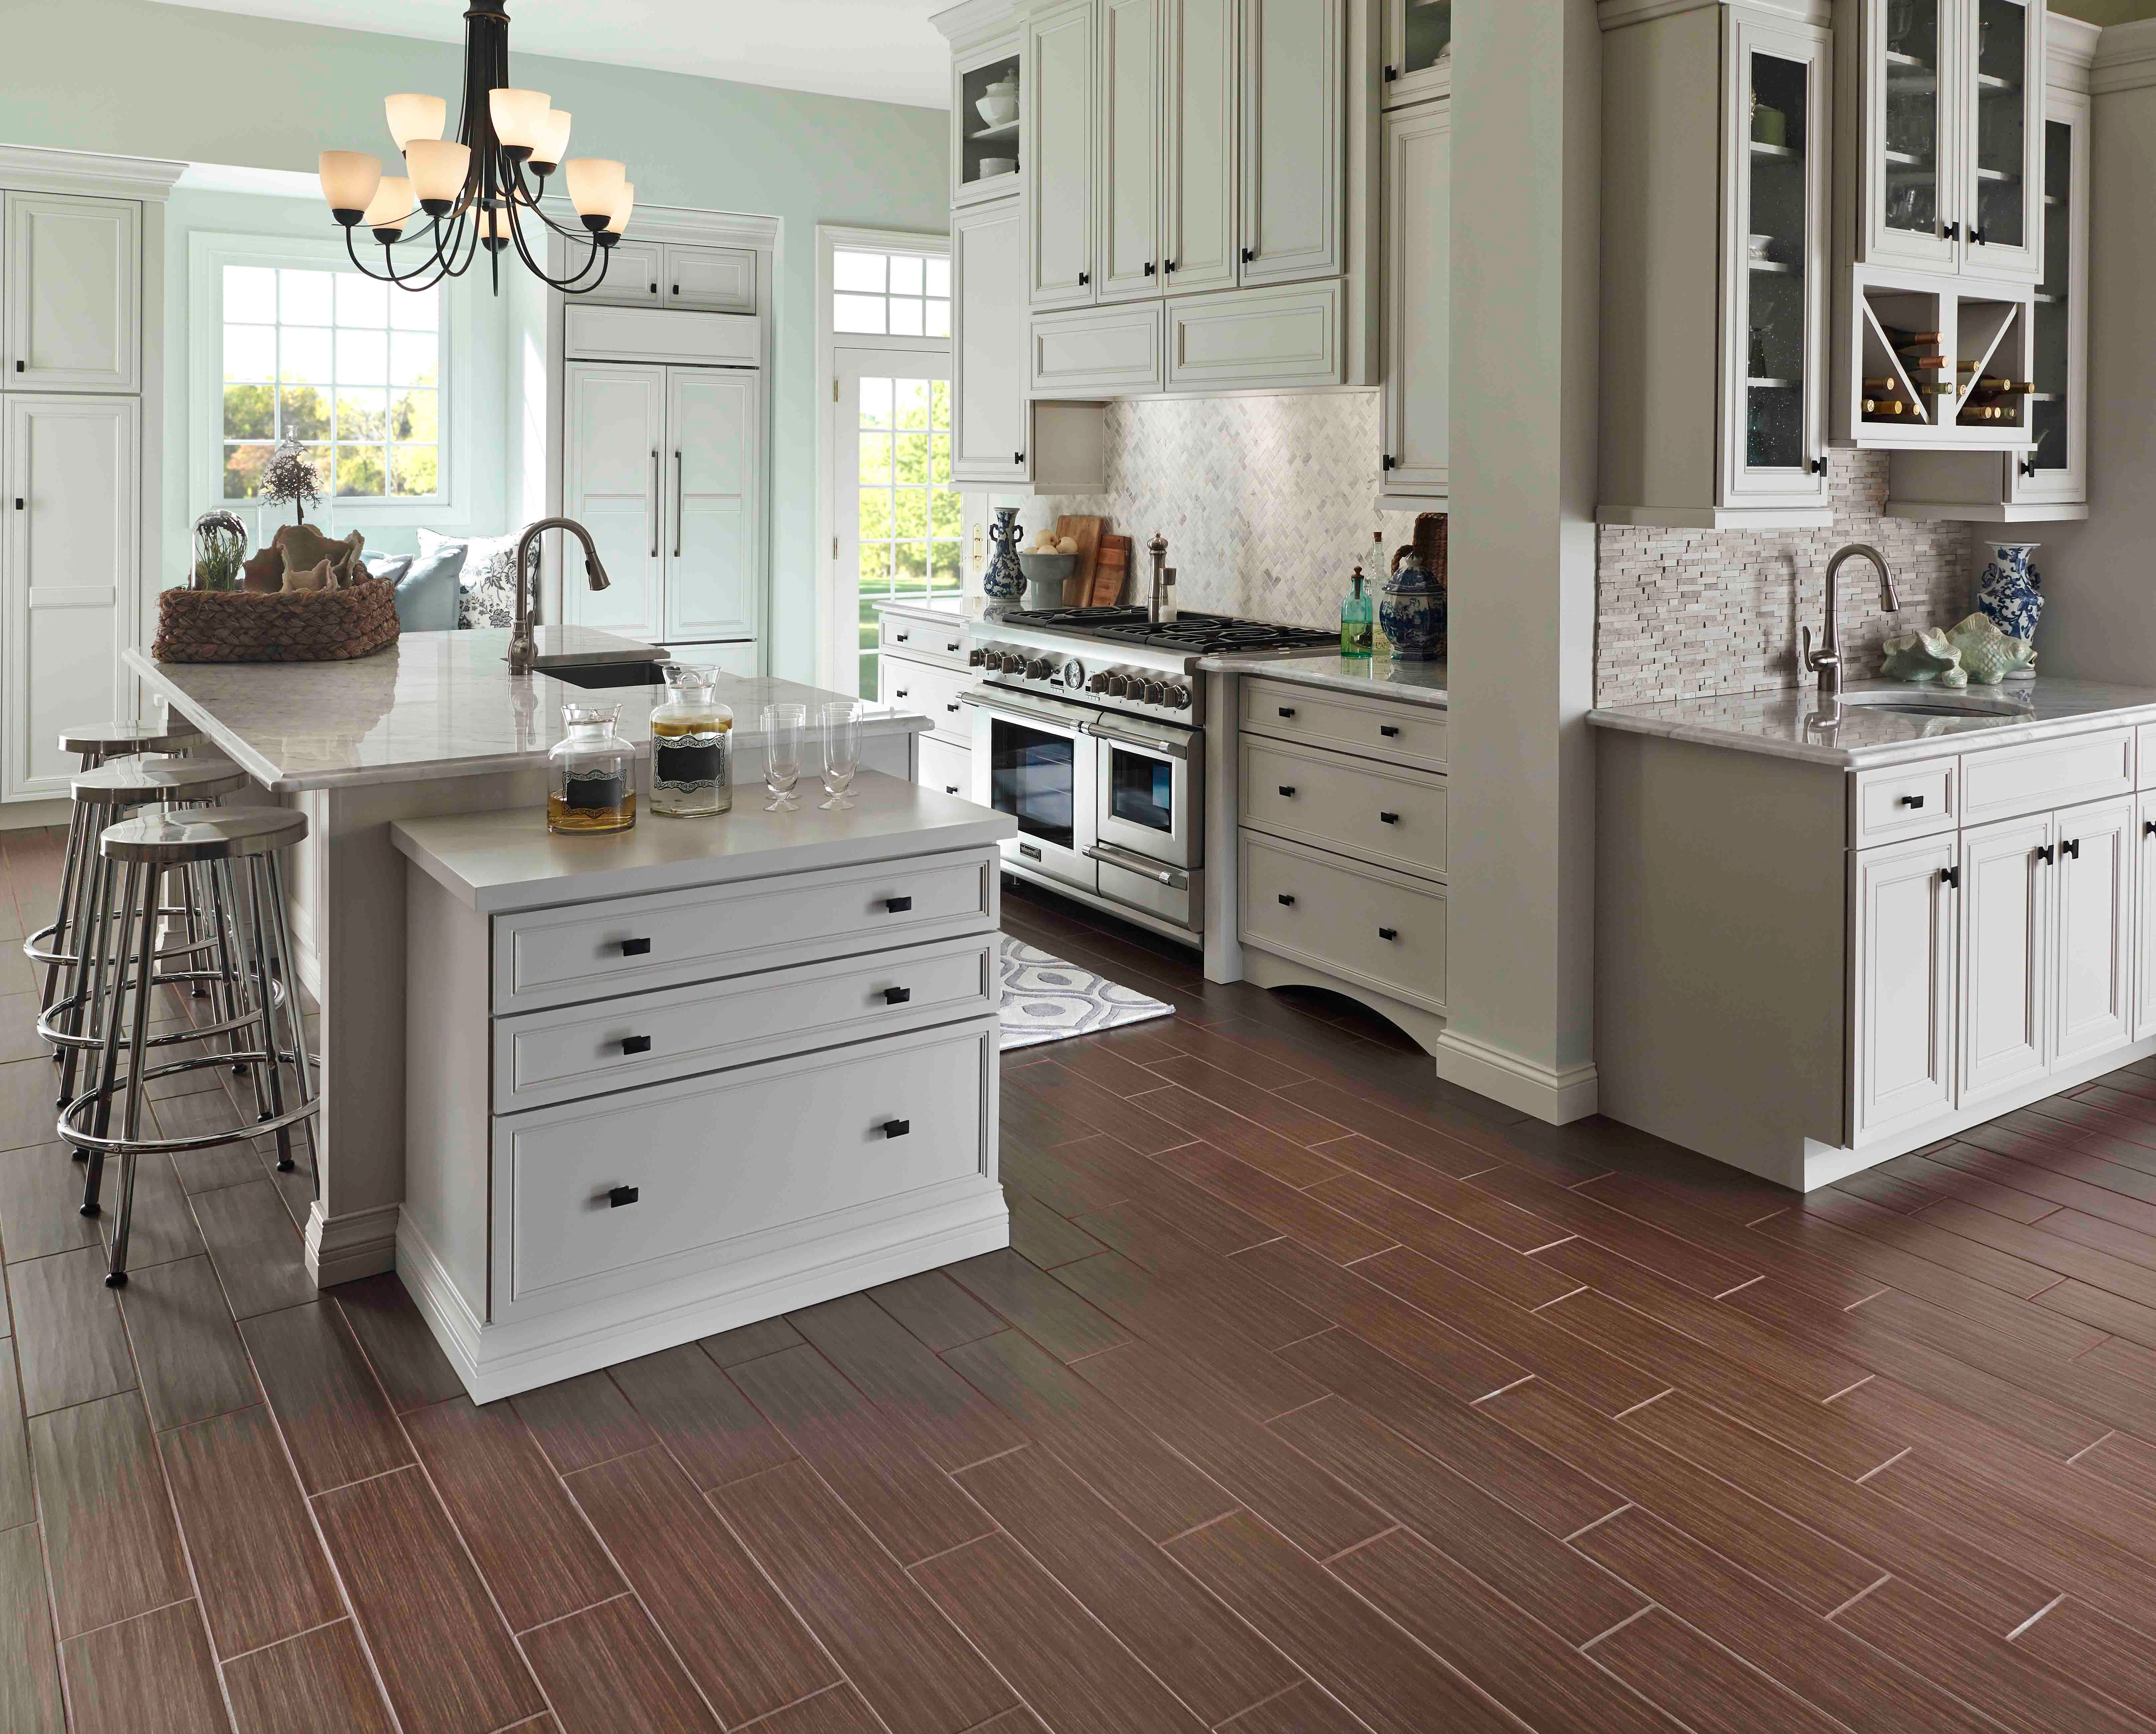 2015 Hot Kitchen Trends Part 1 Cabinets Countertops